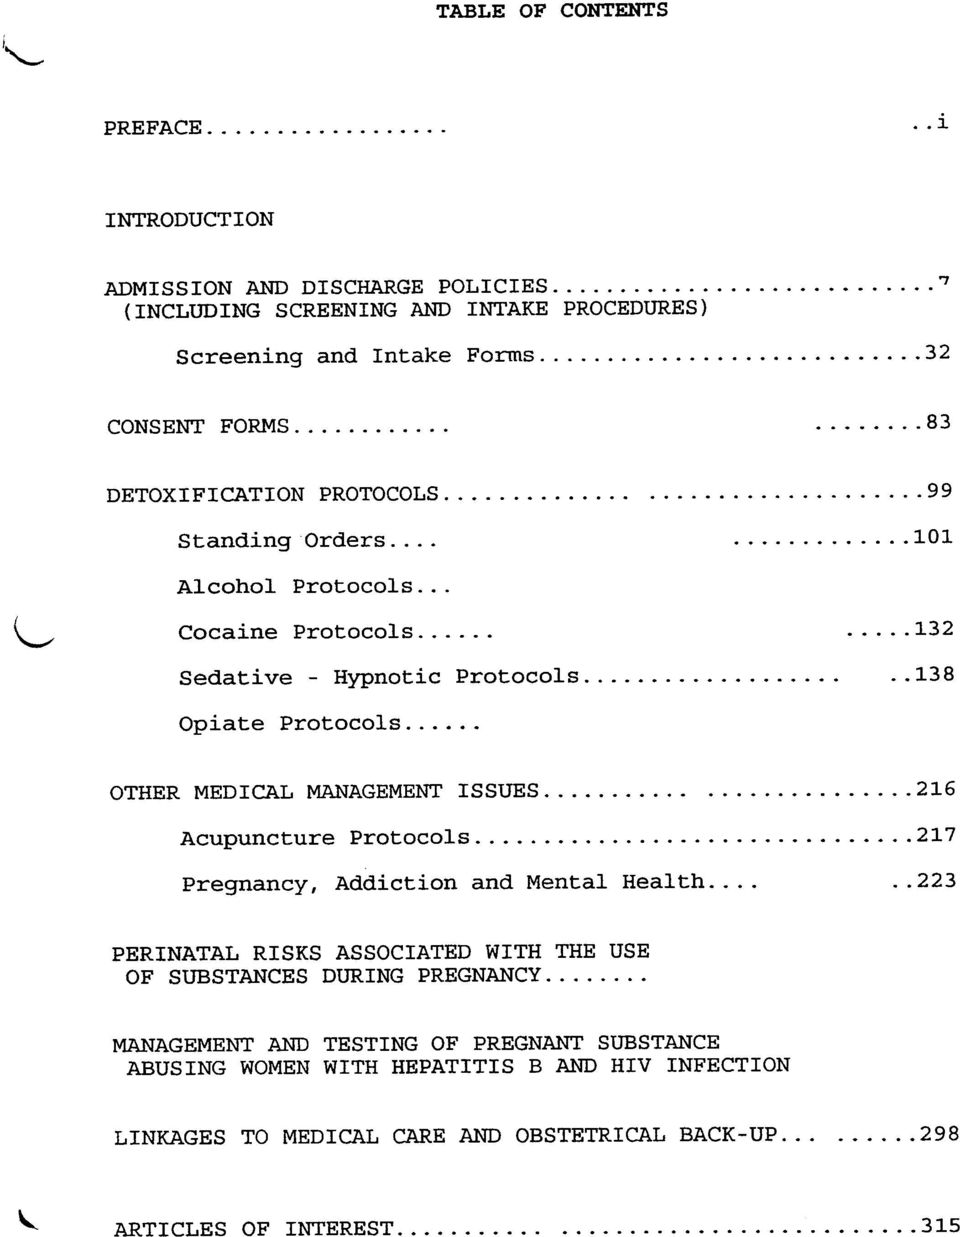 101 Alcohol Protocols 132 L eniacoc Protocols Sedative - Hypnotic Protocols 138 216 Acupuncture Protocols 217 223 PERINATAL RISKS ASSOCIATED WITH THE USE MANAGEMENT